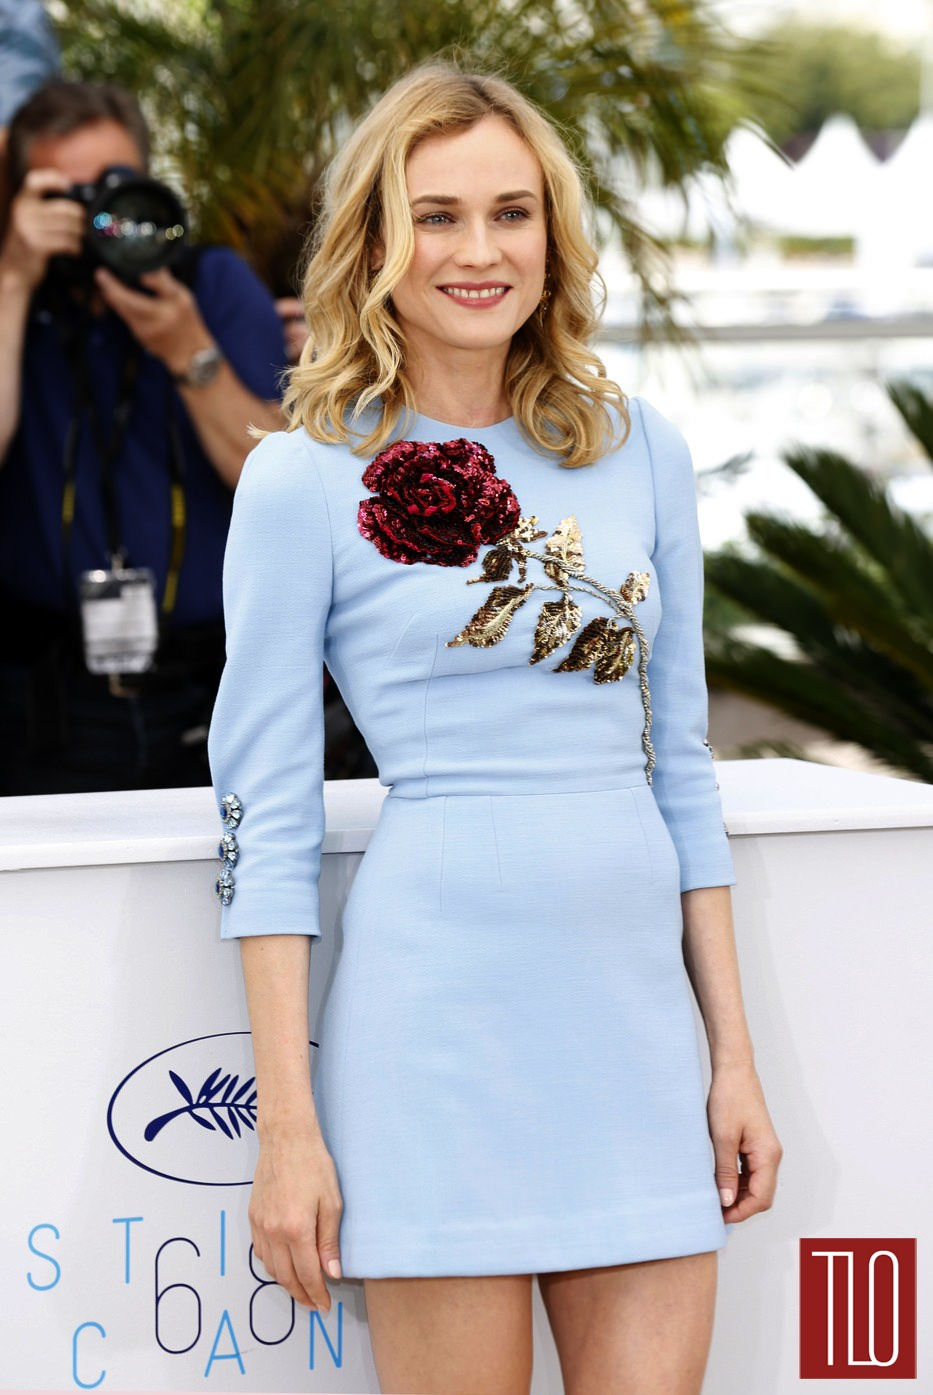 Diane-Kruger-Disorder-Photocall-Cannes-Film-Festival-2015-Red-Carpet-Fashion-Dolce-Gabbana-Tom-Lorenzo-Site-TLO (1)